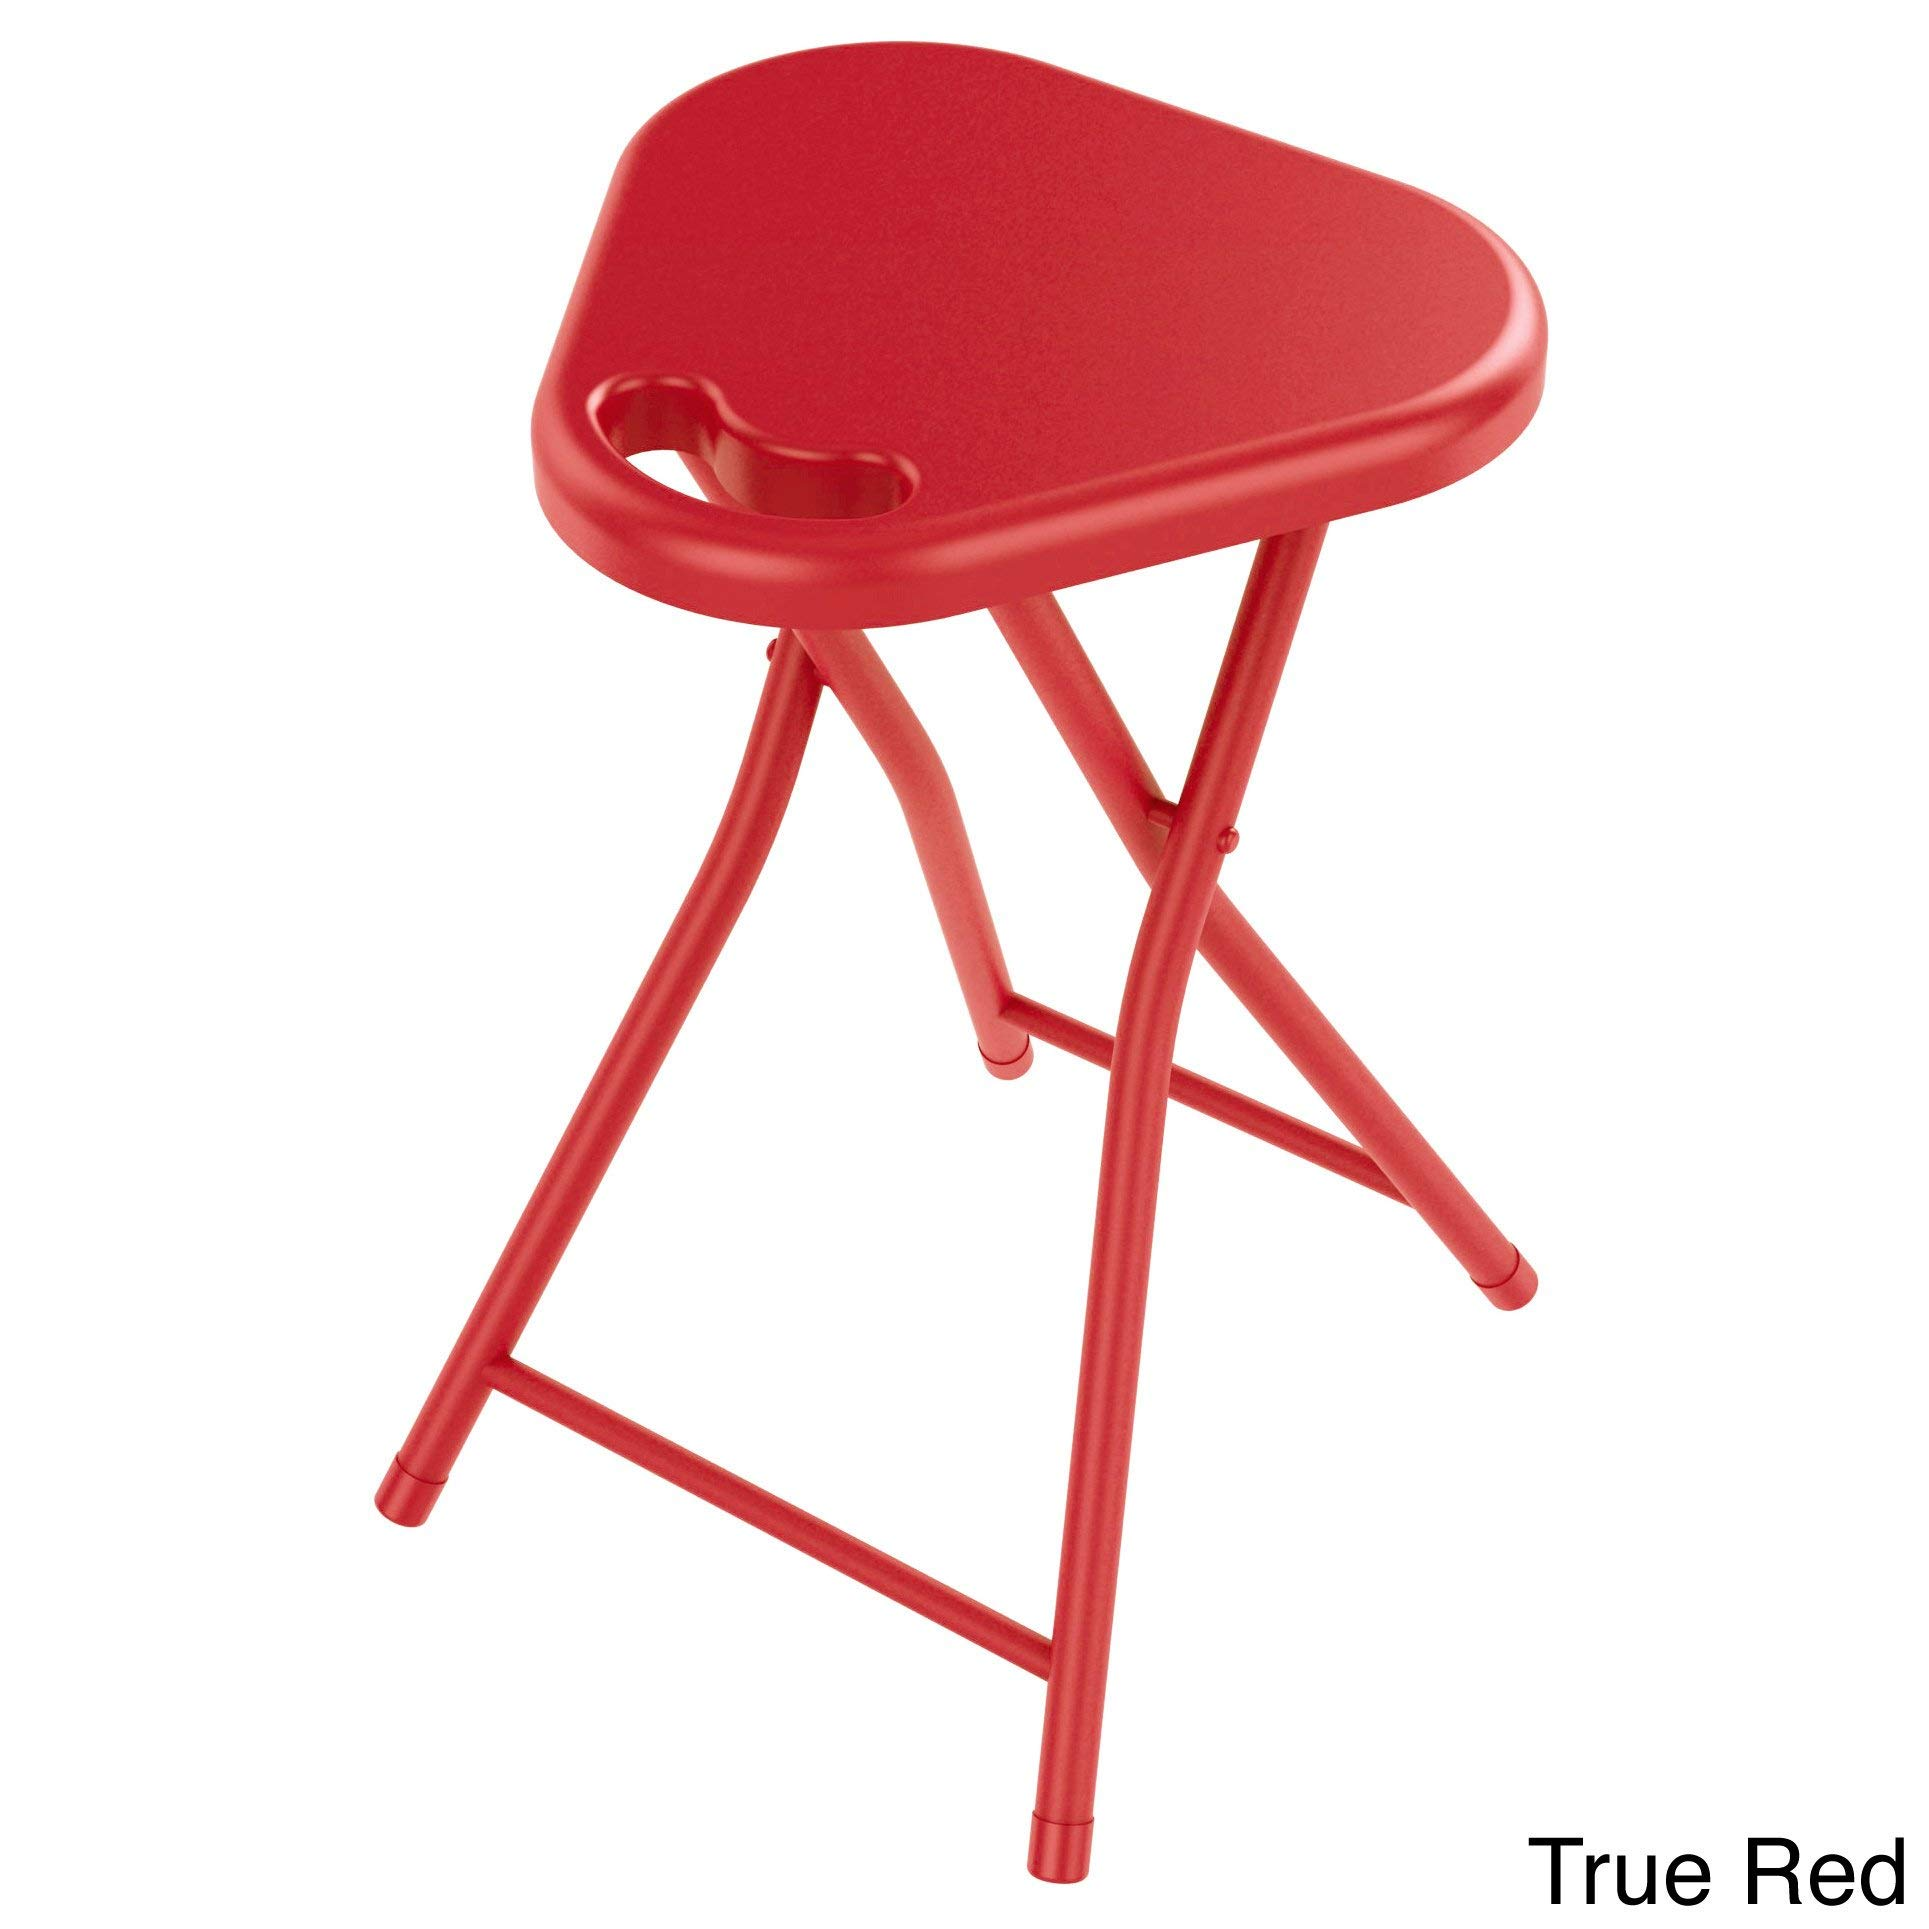 Set of 4 Red Folding Stool with Handle Heavy Duty Folded Stool Chair Indoor Outdoor Portable Sitting Stool for Home Garage Picnic Office Household Lightweight Durable Quality Metal, Plastic by MISC